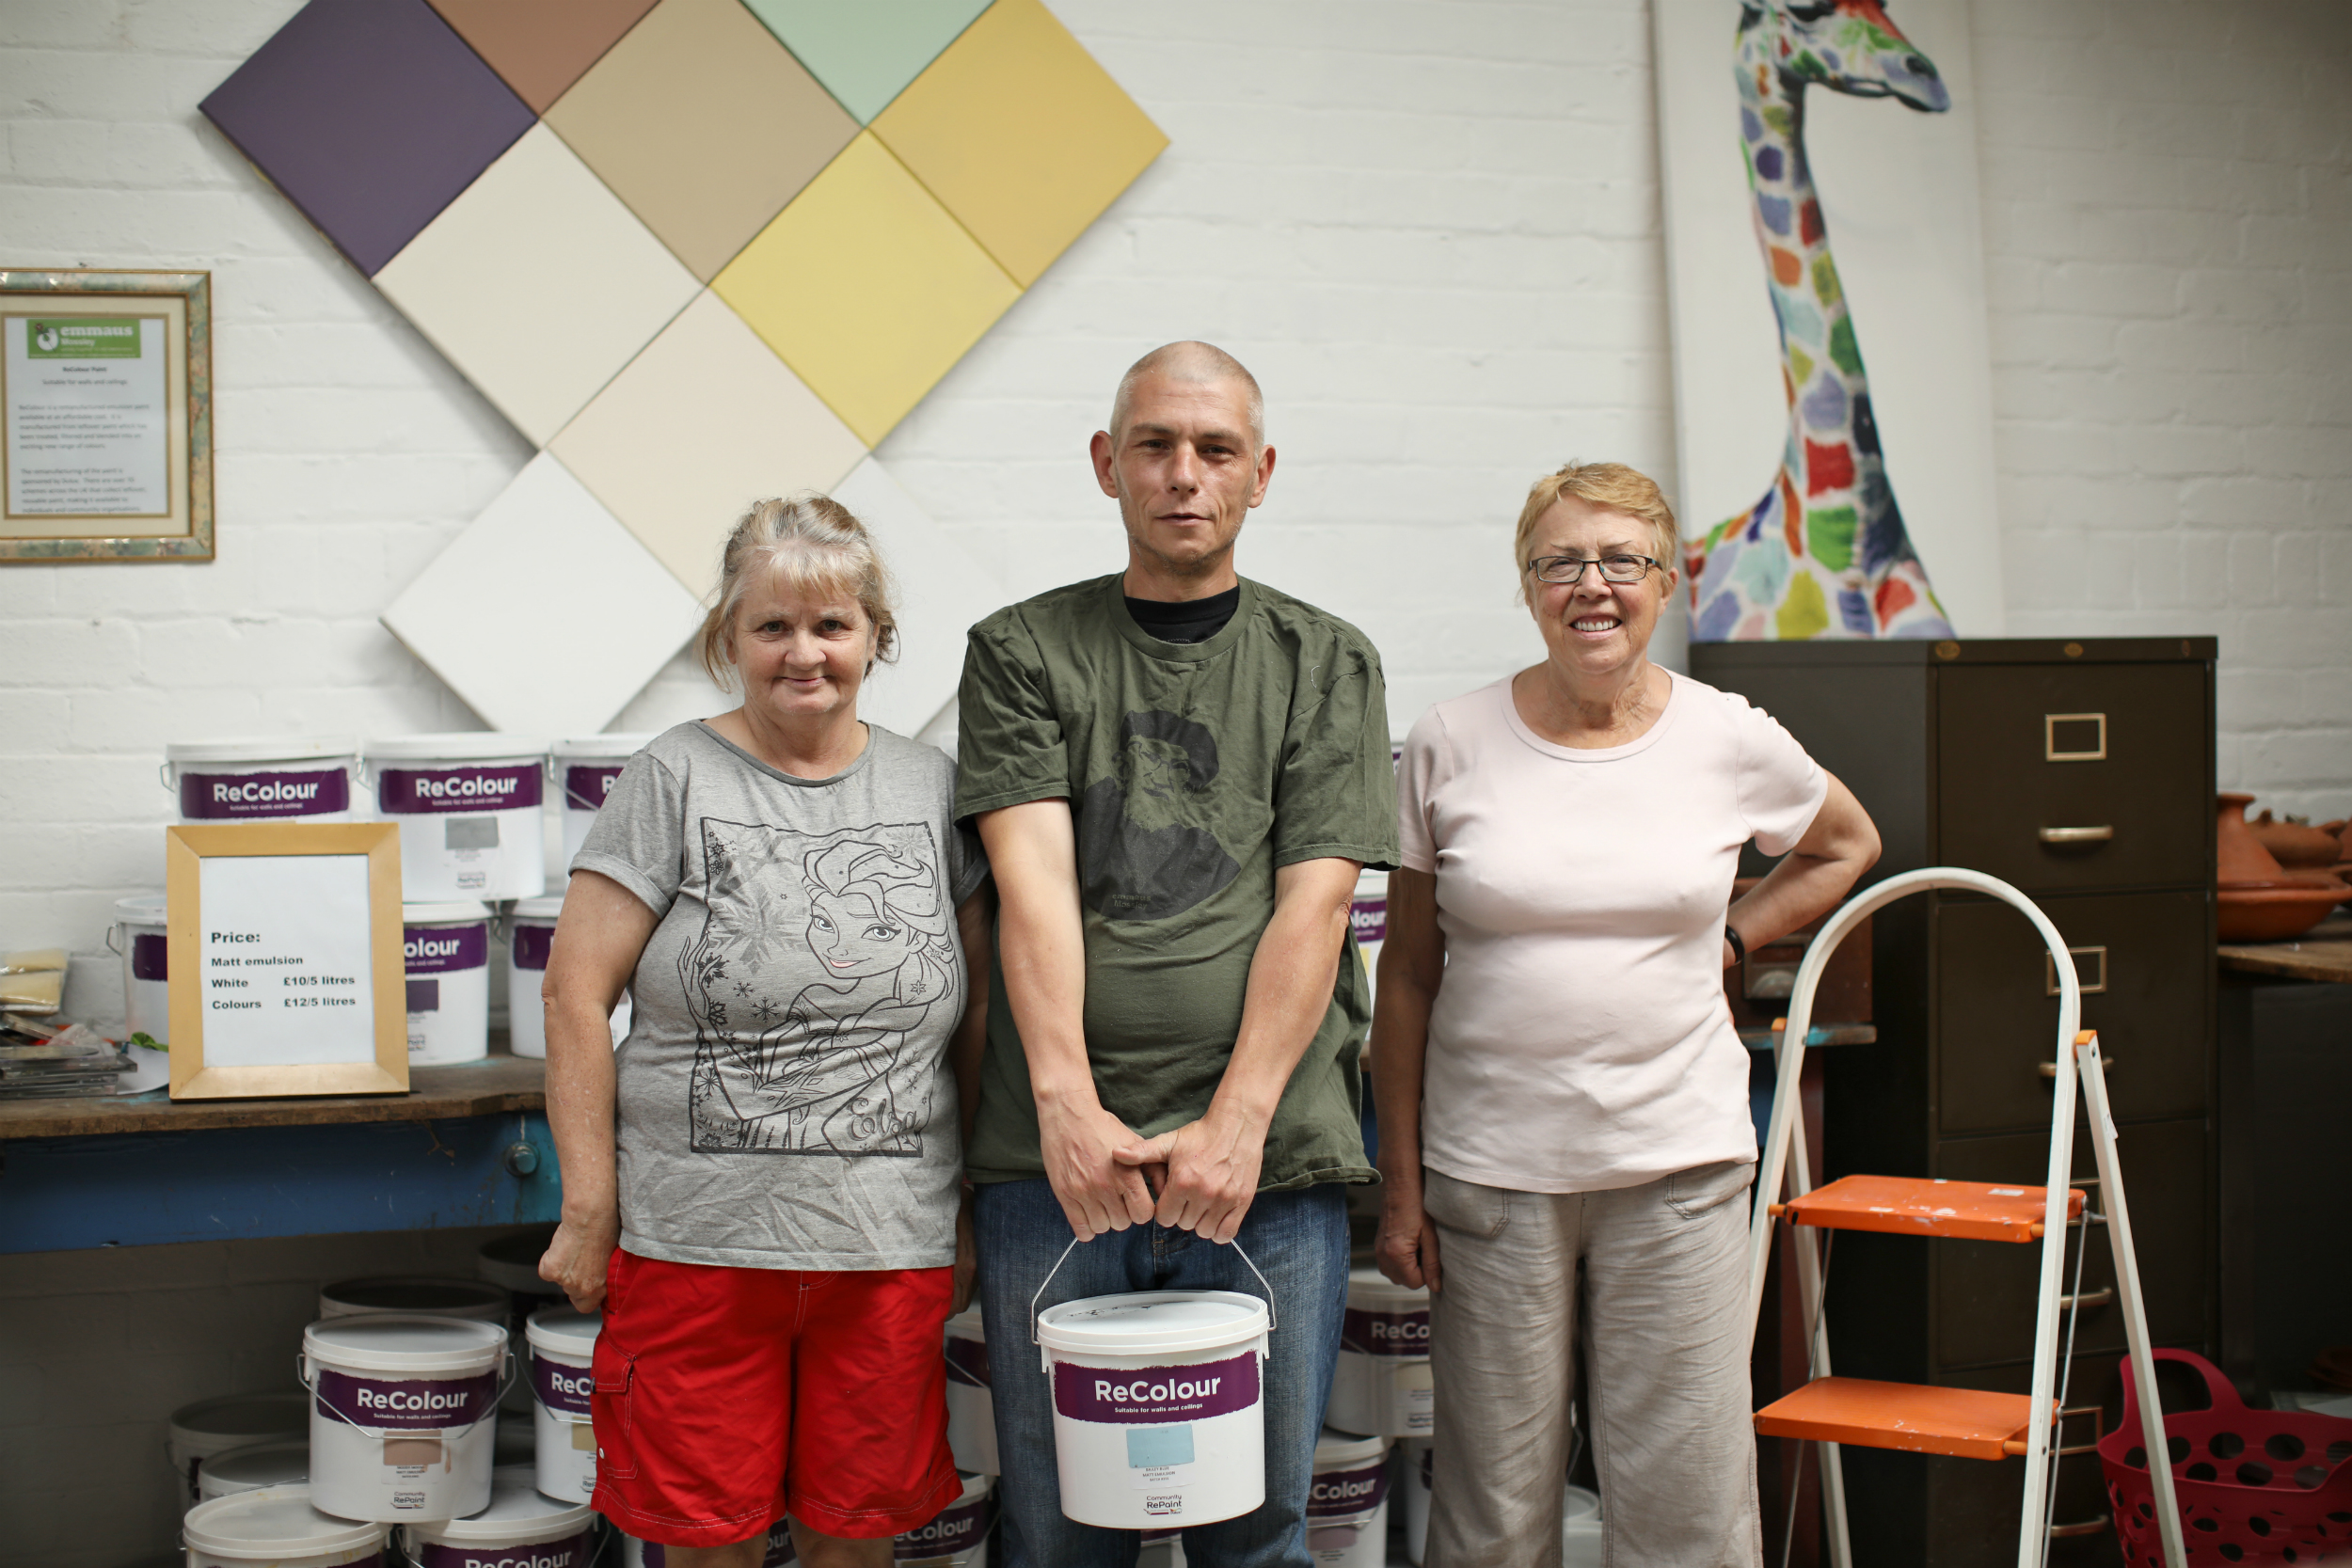 Staff pose with ReColour emulsion paint.